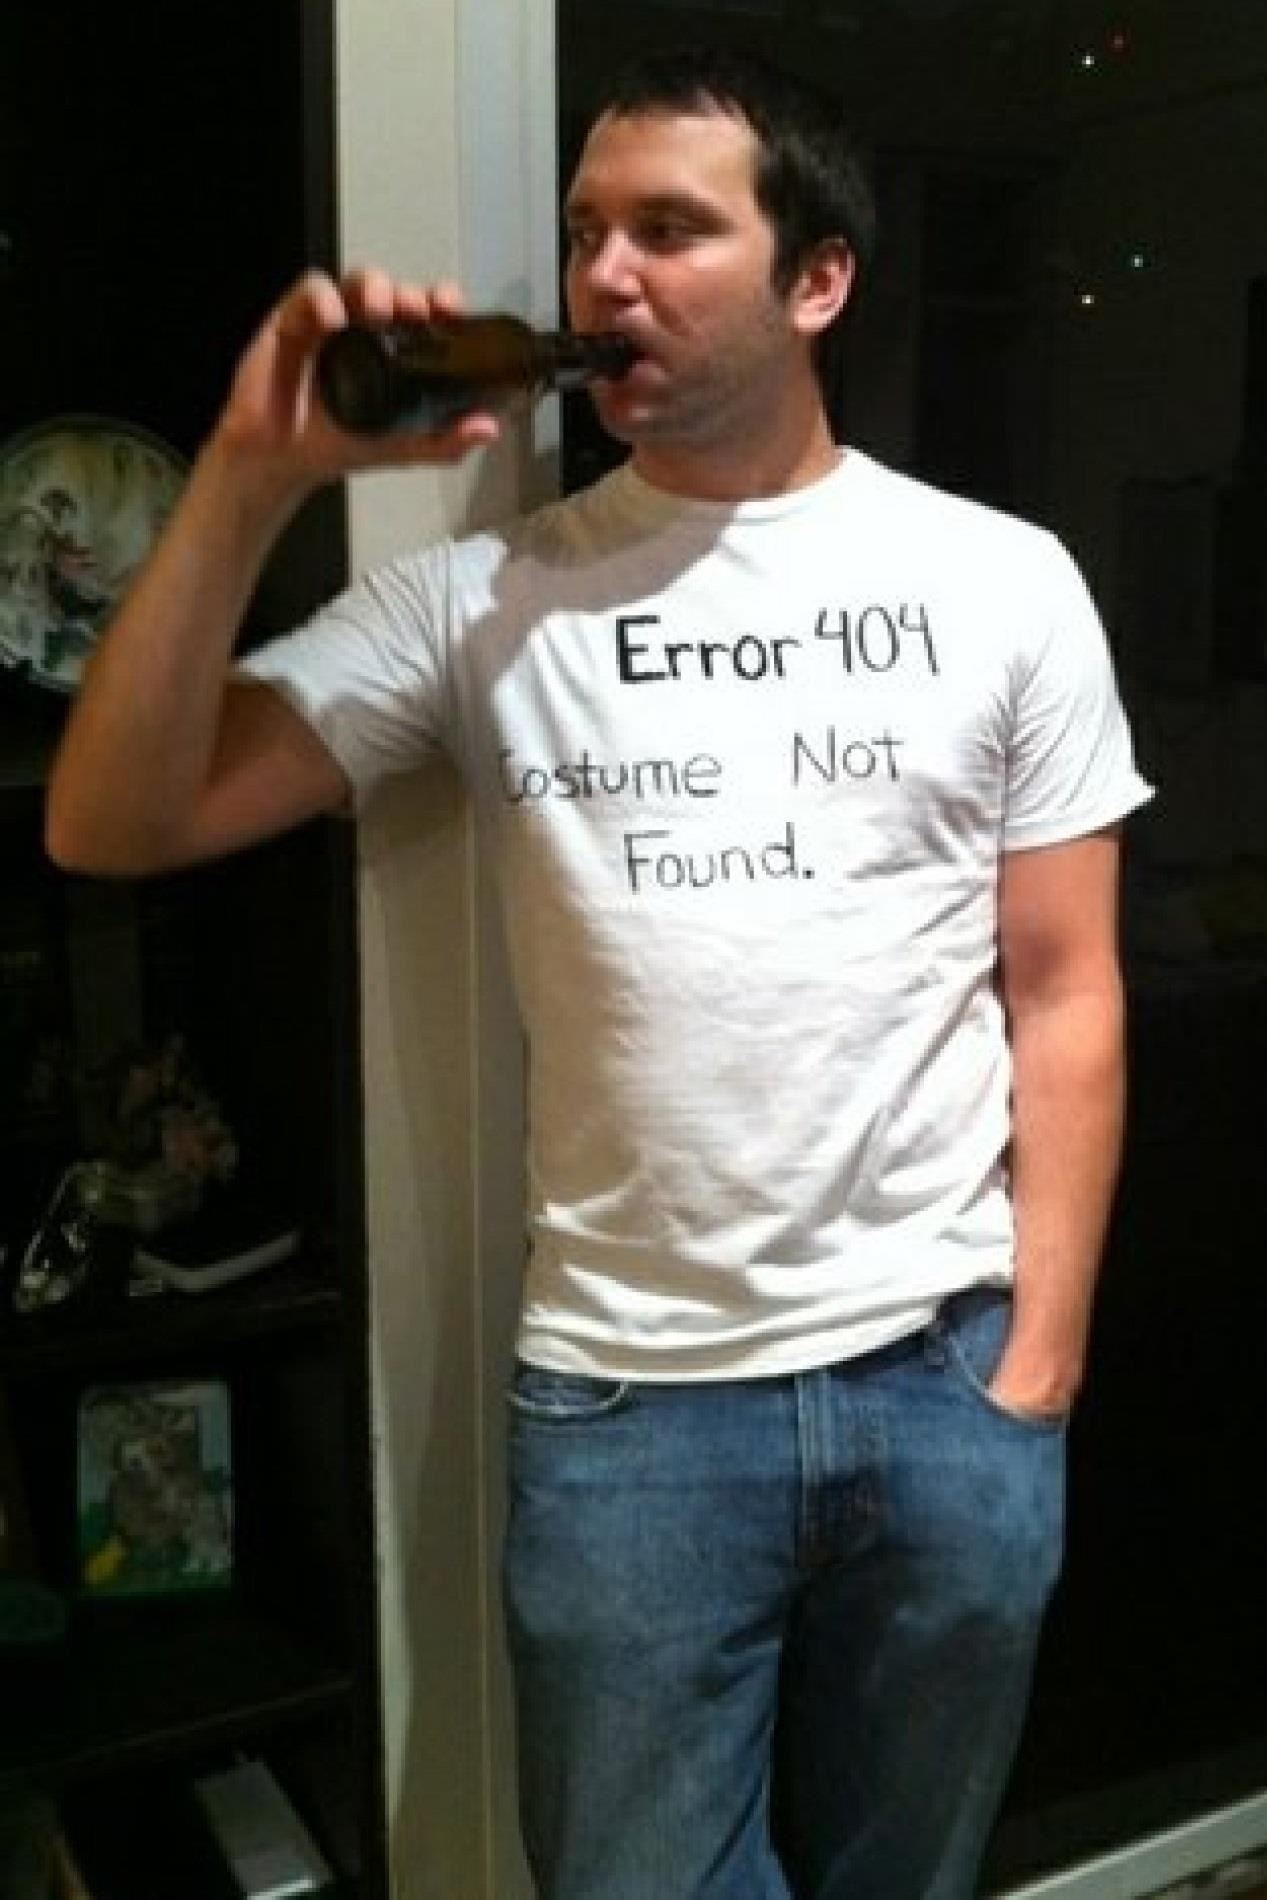 4Error 404 Costume Not Found  sc 1 st  Halloween Ideas - WonderHowTo & 9 Insanely Lazy Last-Minute Halloween Costume Ideas Using Only What ...